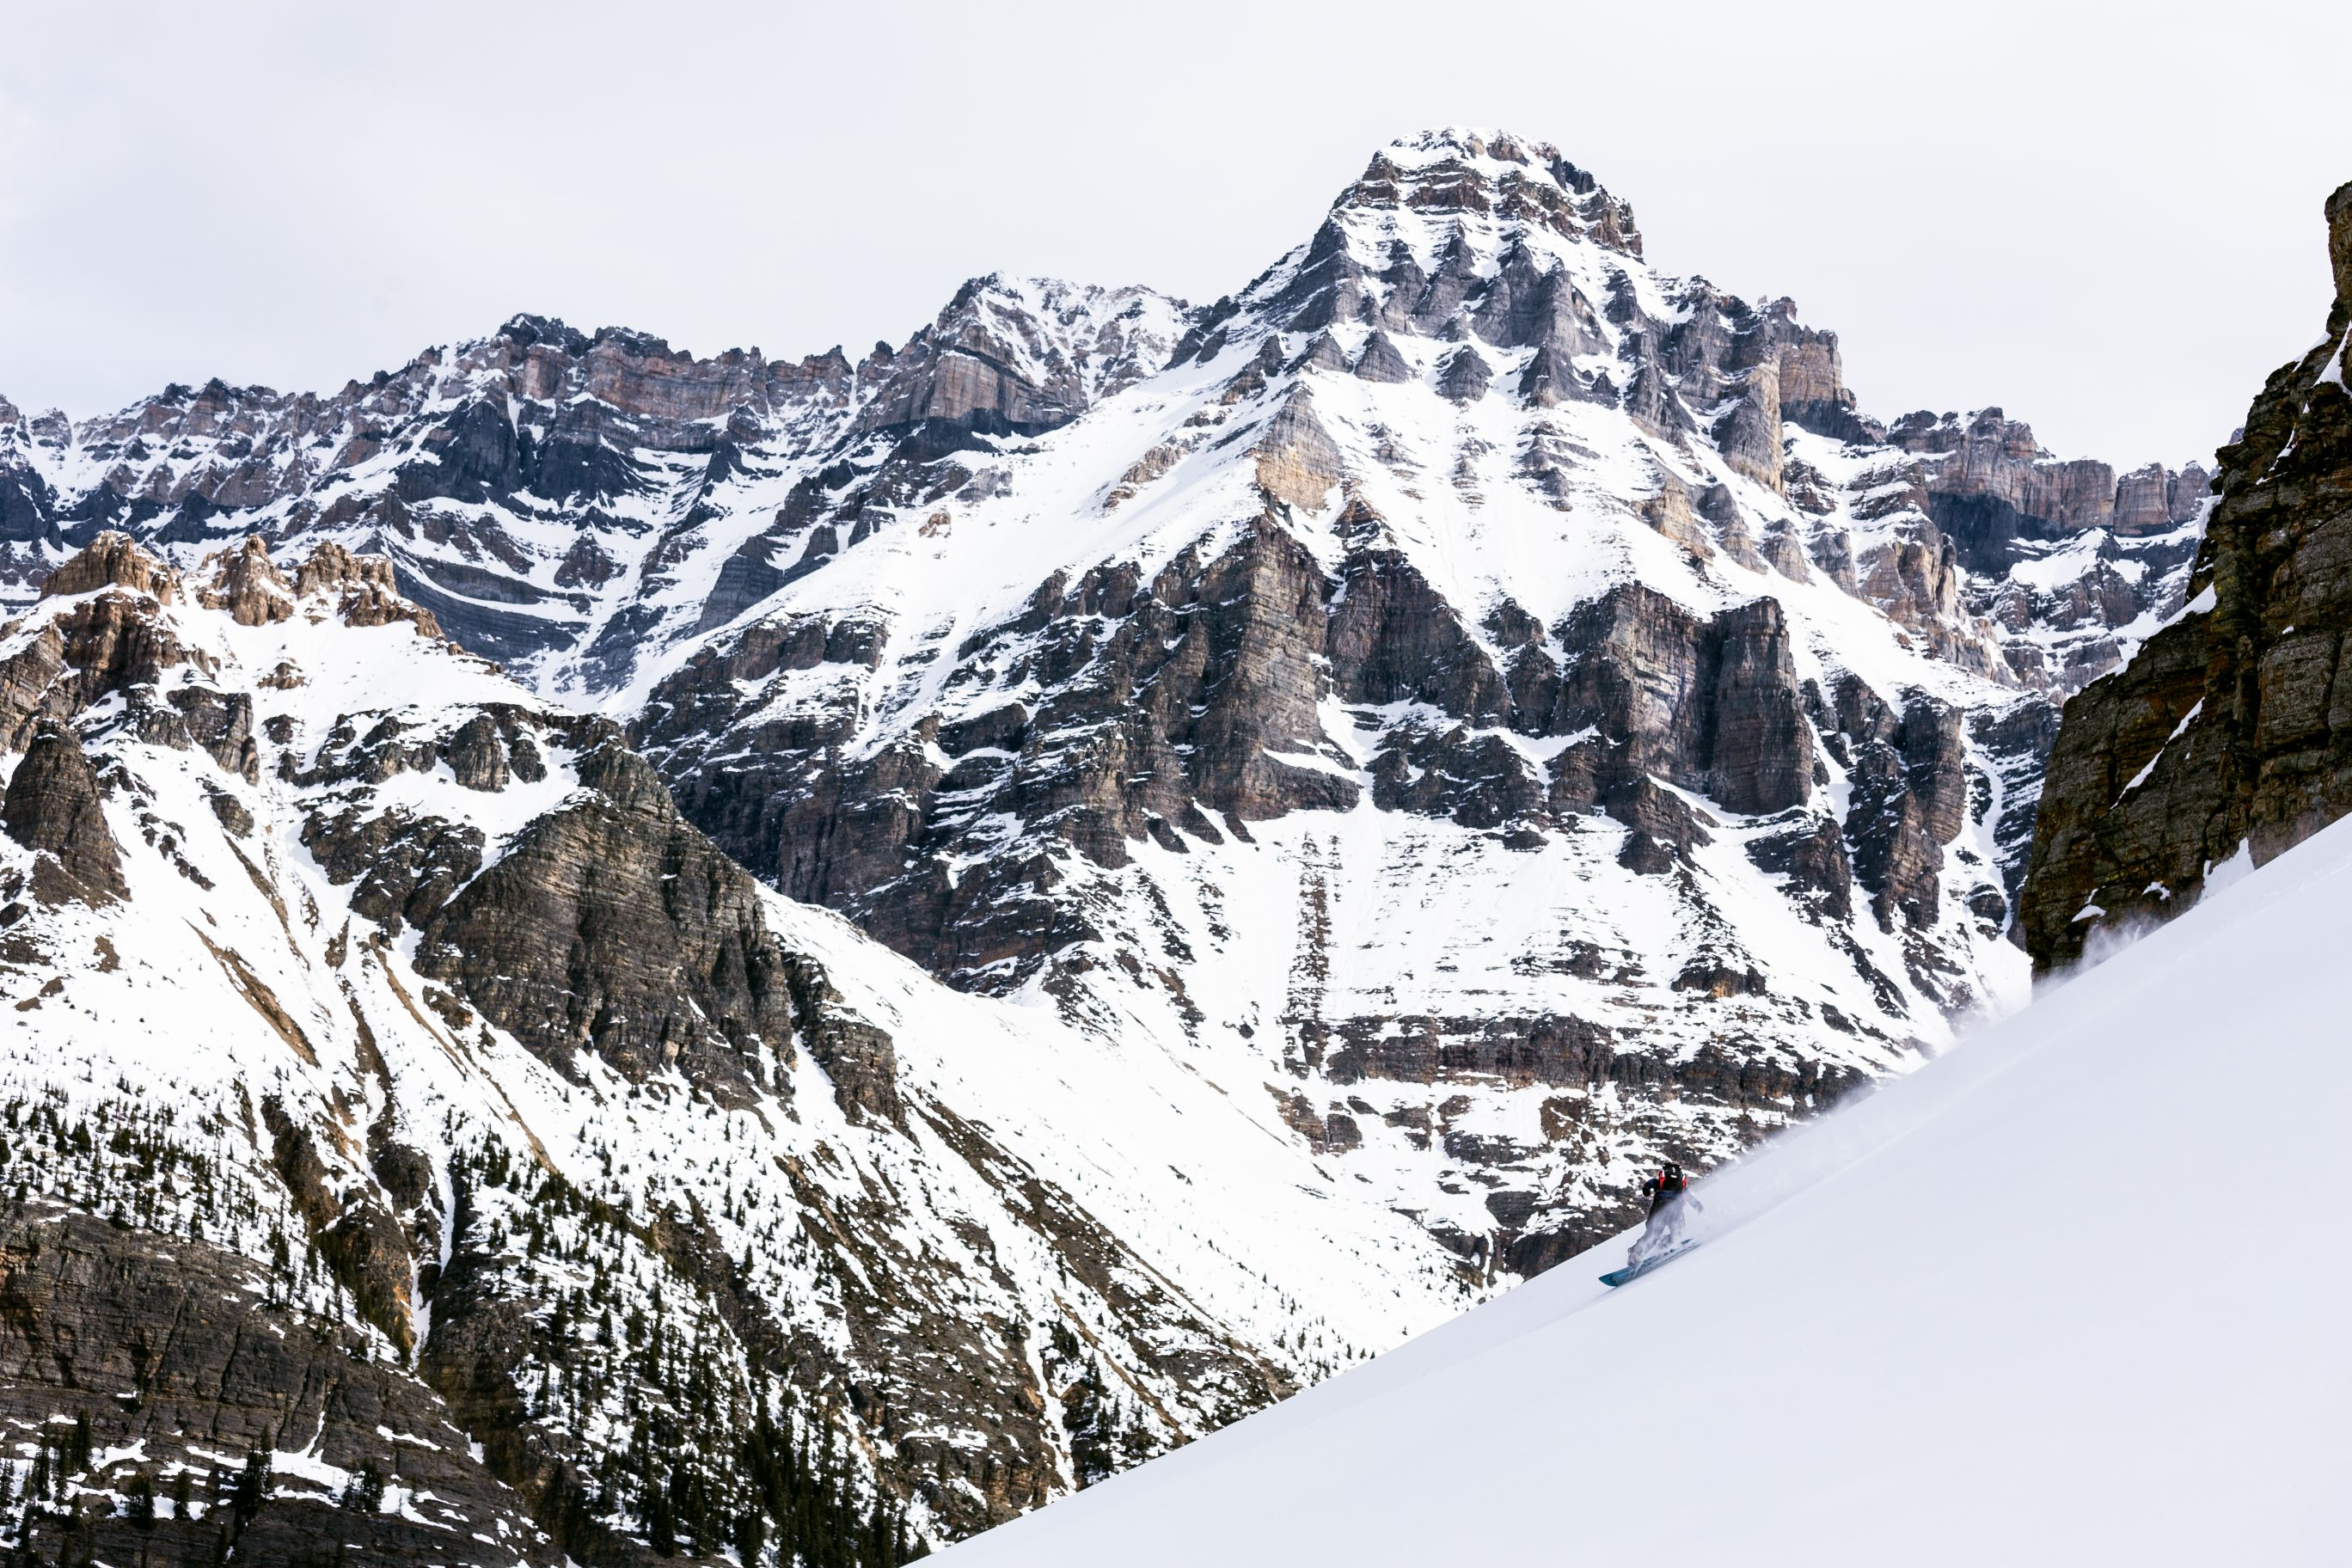 Man snowboarding down steep slope with mountains in the background.